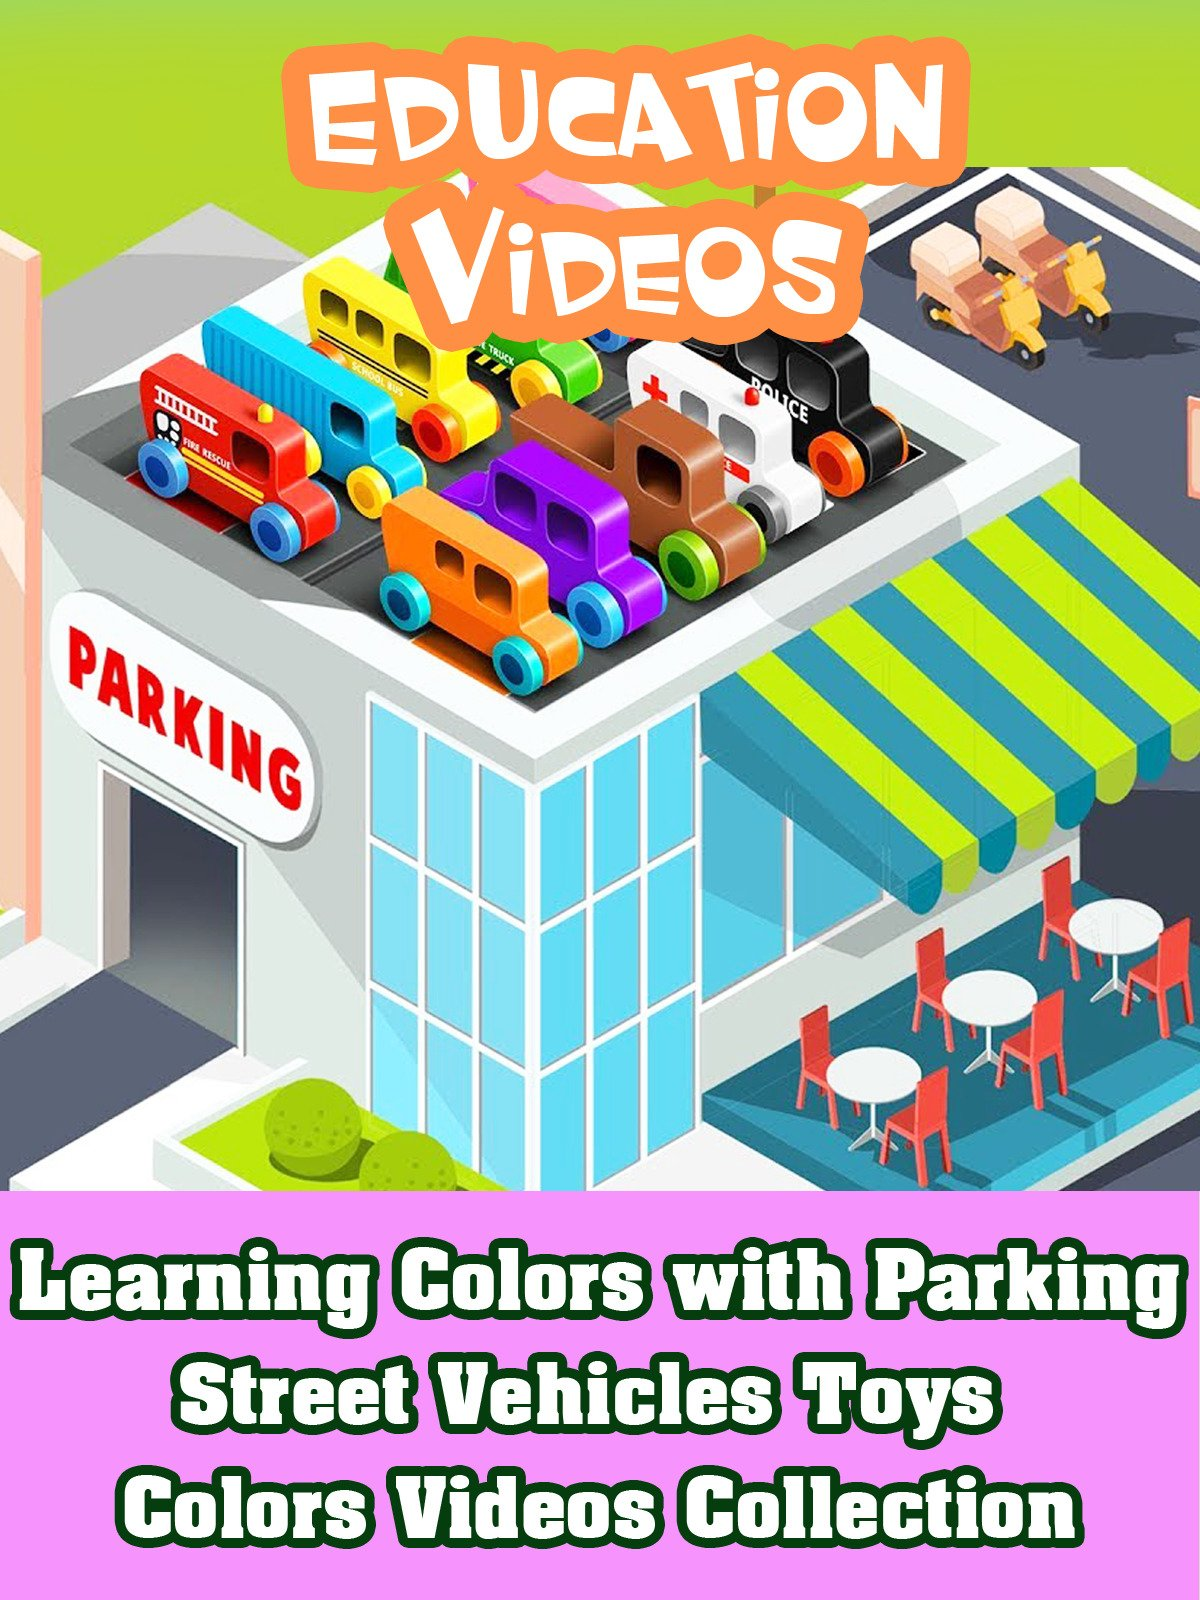 Learning Colors with Parking Street Vehicles Toys